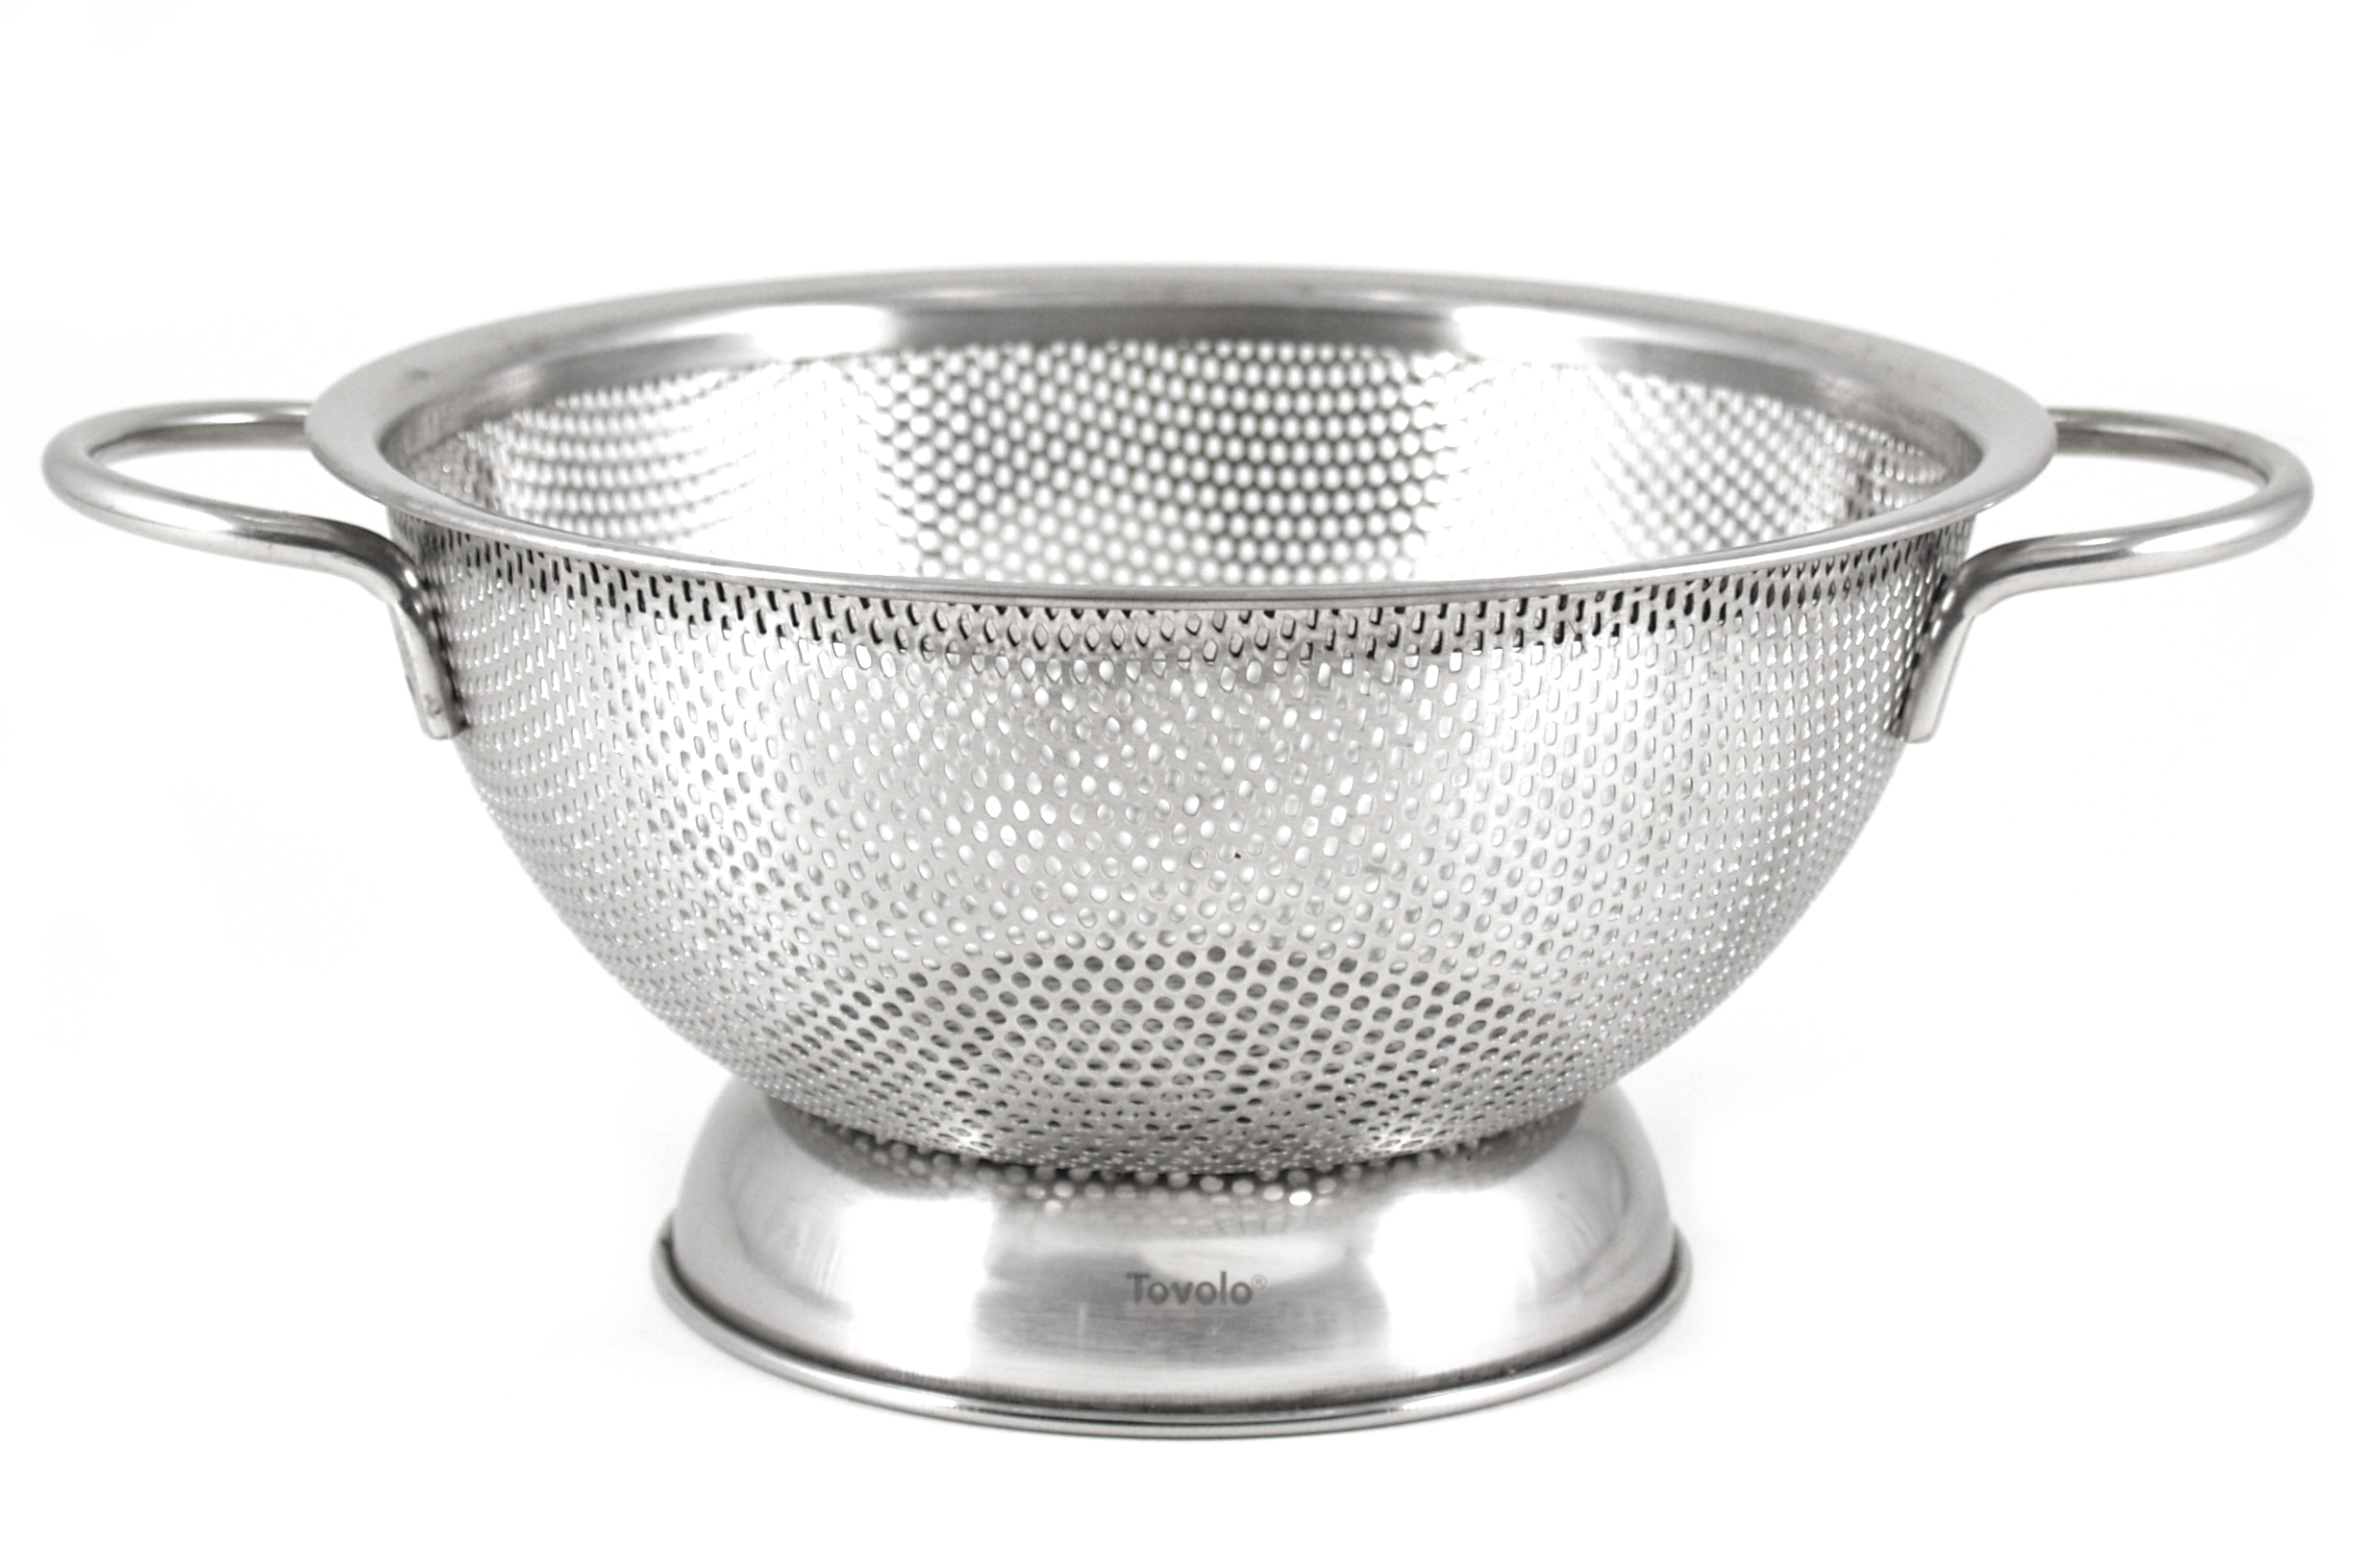 Tovolo Medium Stainless Steel Perforated Colander